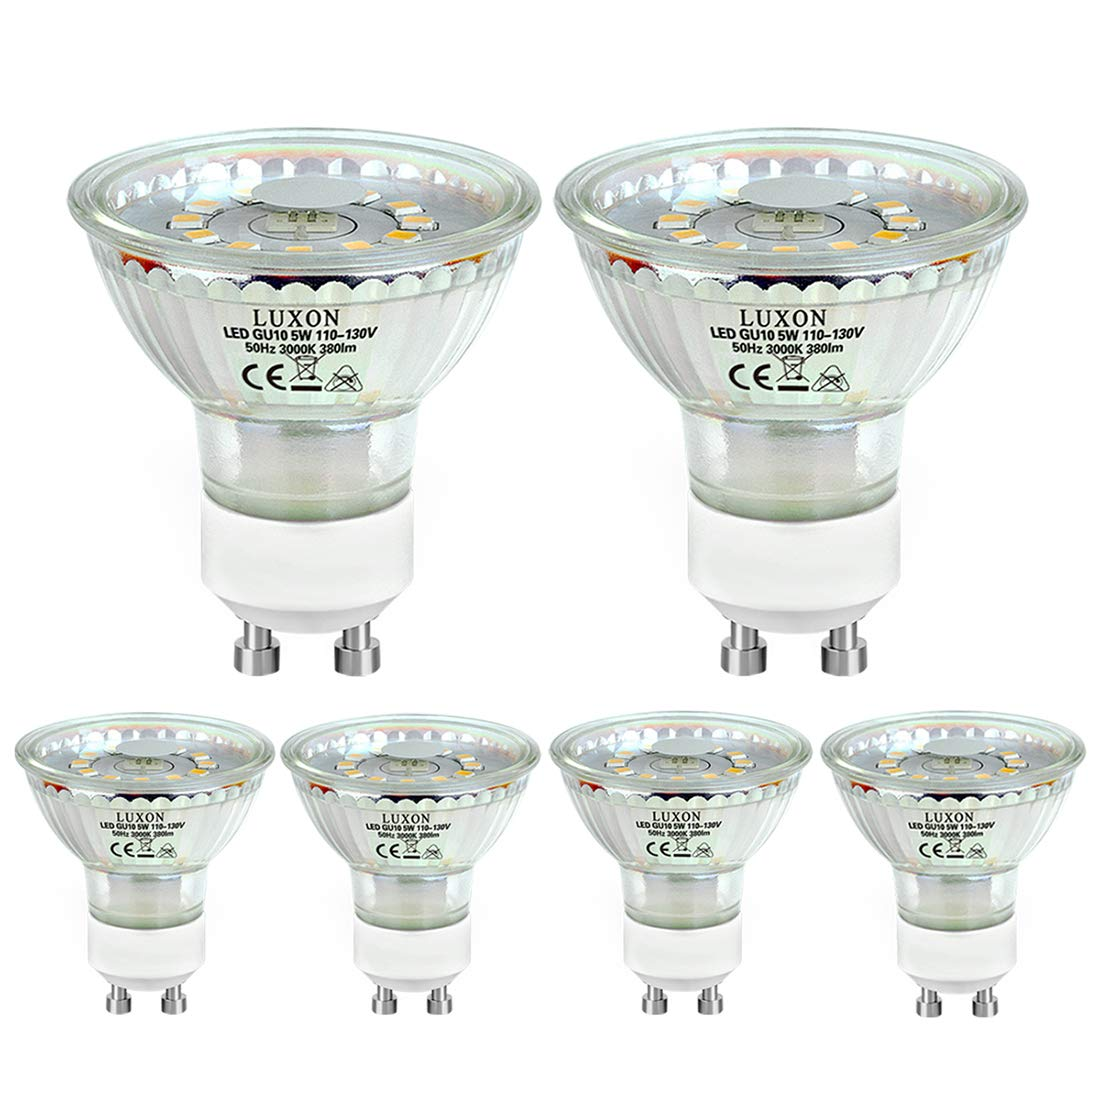 6-pack GU10 LED Light Bulbs 40W Equivalent Halogen Light Bulbs Warm White 3000K Non-dimmable Spotlight Light Recessed Indoor Lights by LUXON